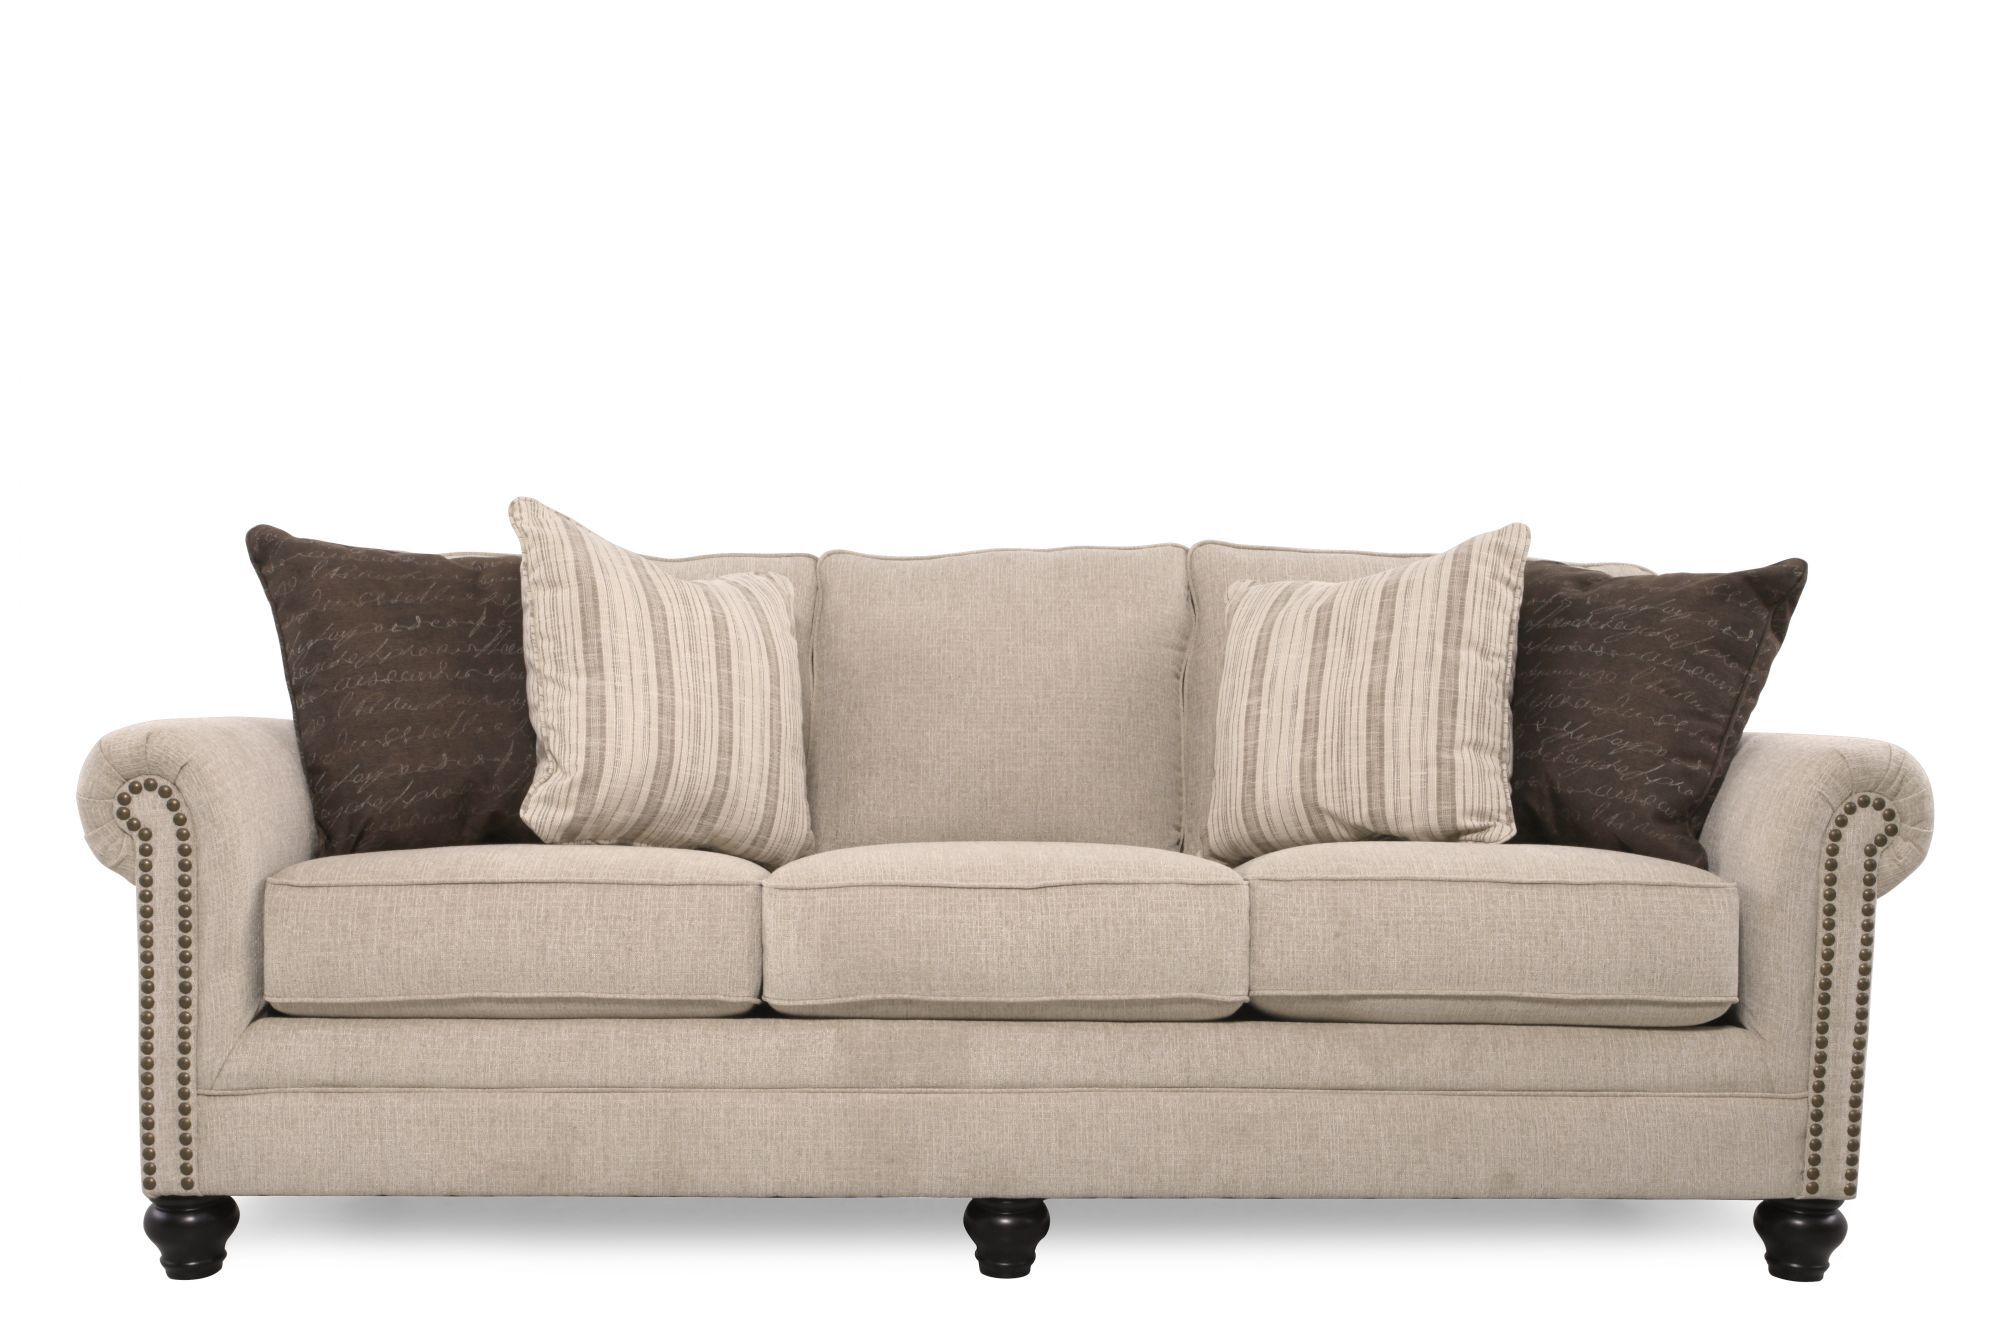 Superior Images Casual Nailhead Accented 90u0026quot; Sofa In Linen Casual  Nailhead Accented 90u0026quot; Sofa In Linen